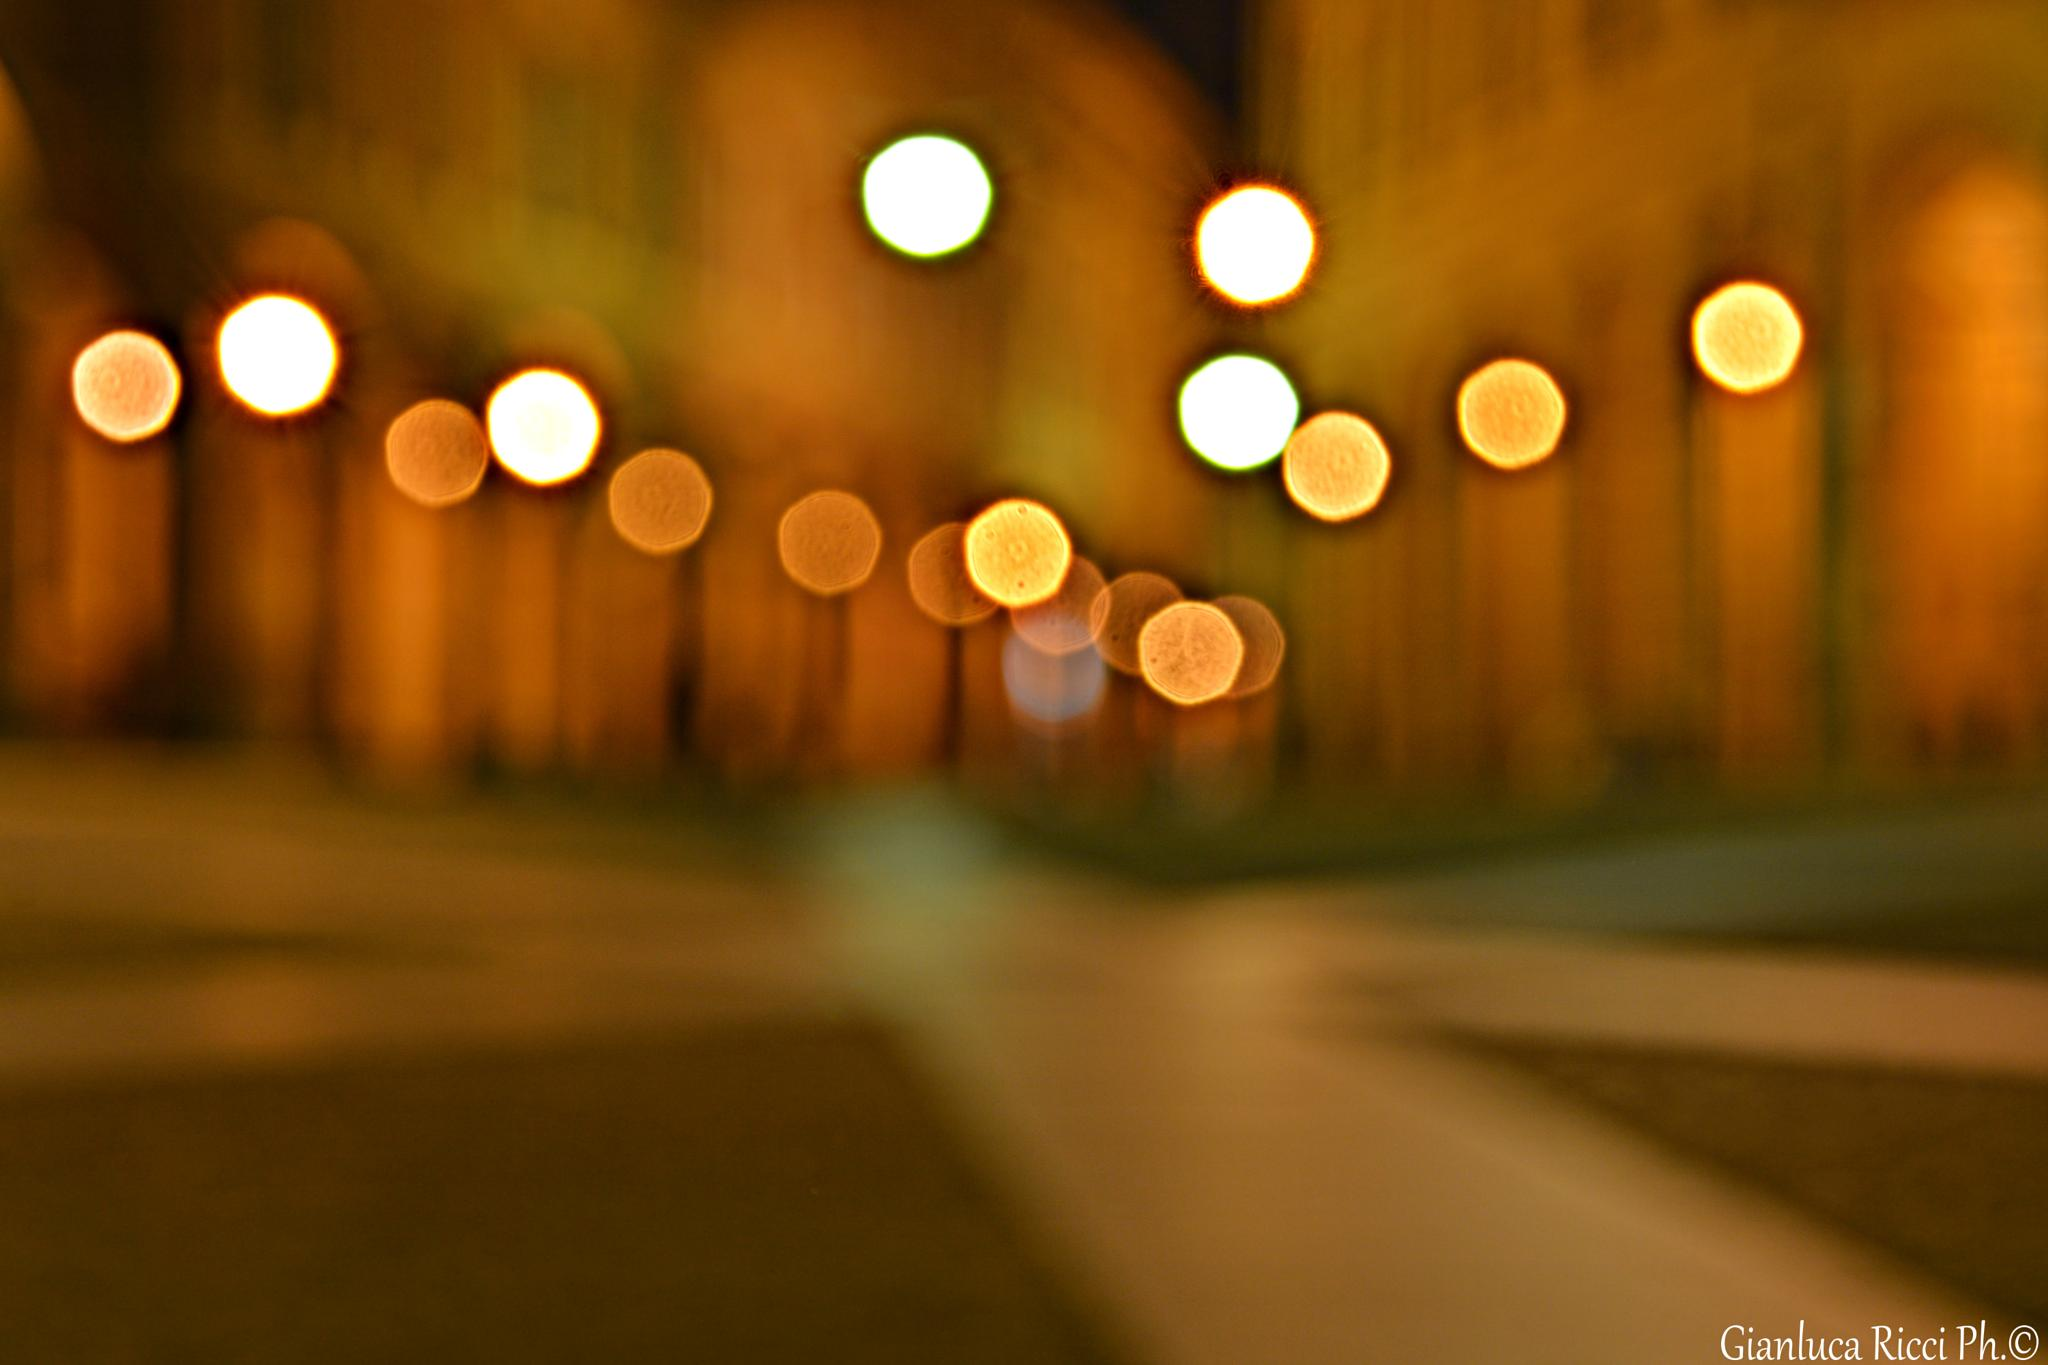 Out of focus by Ricci Gianluca